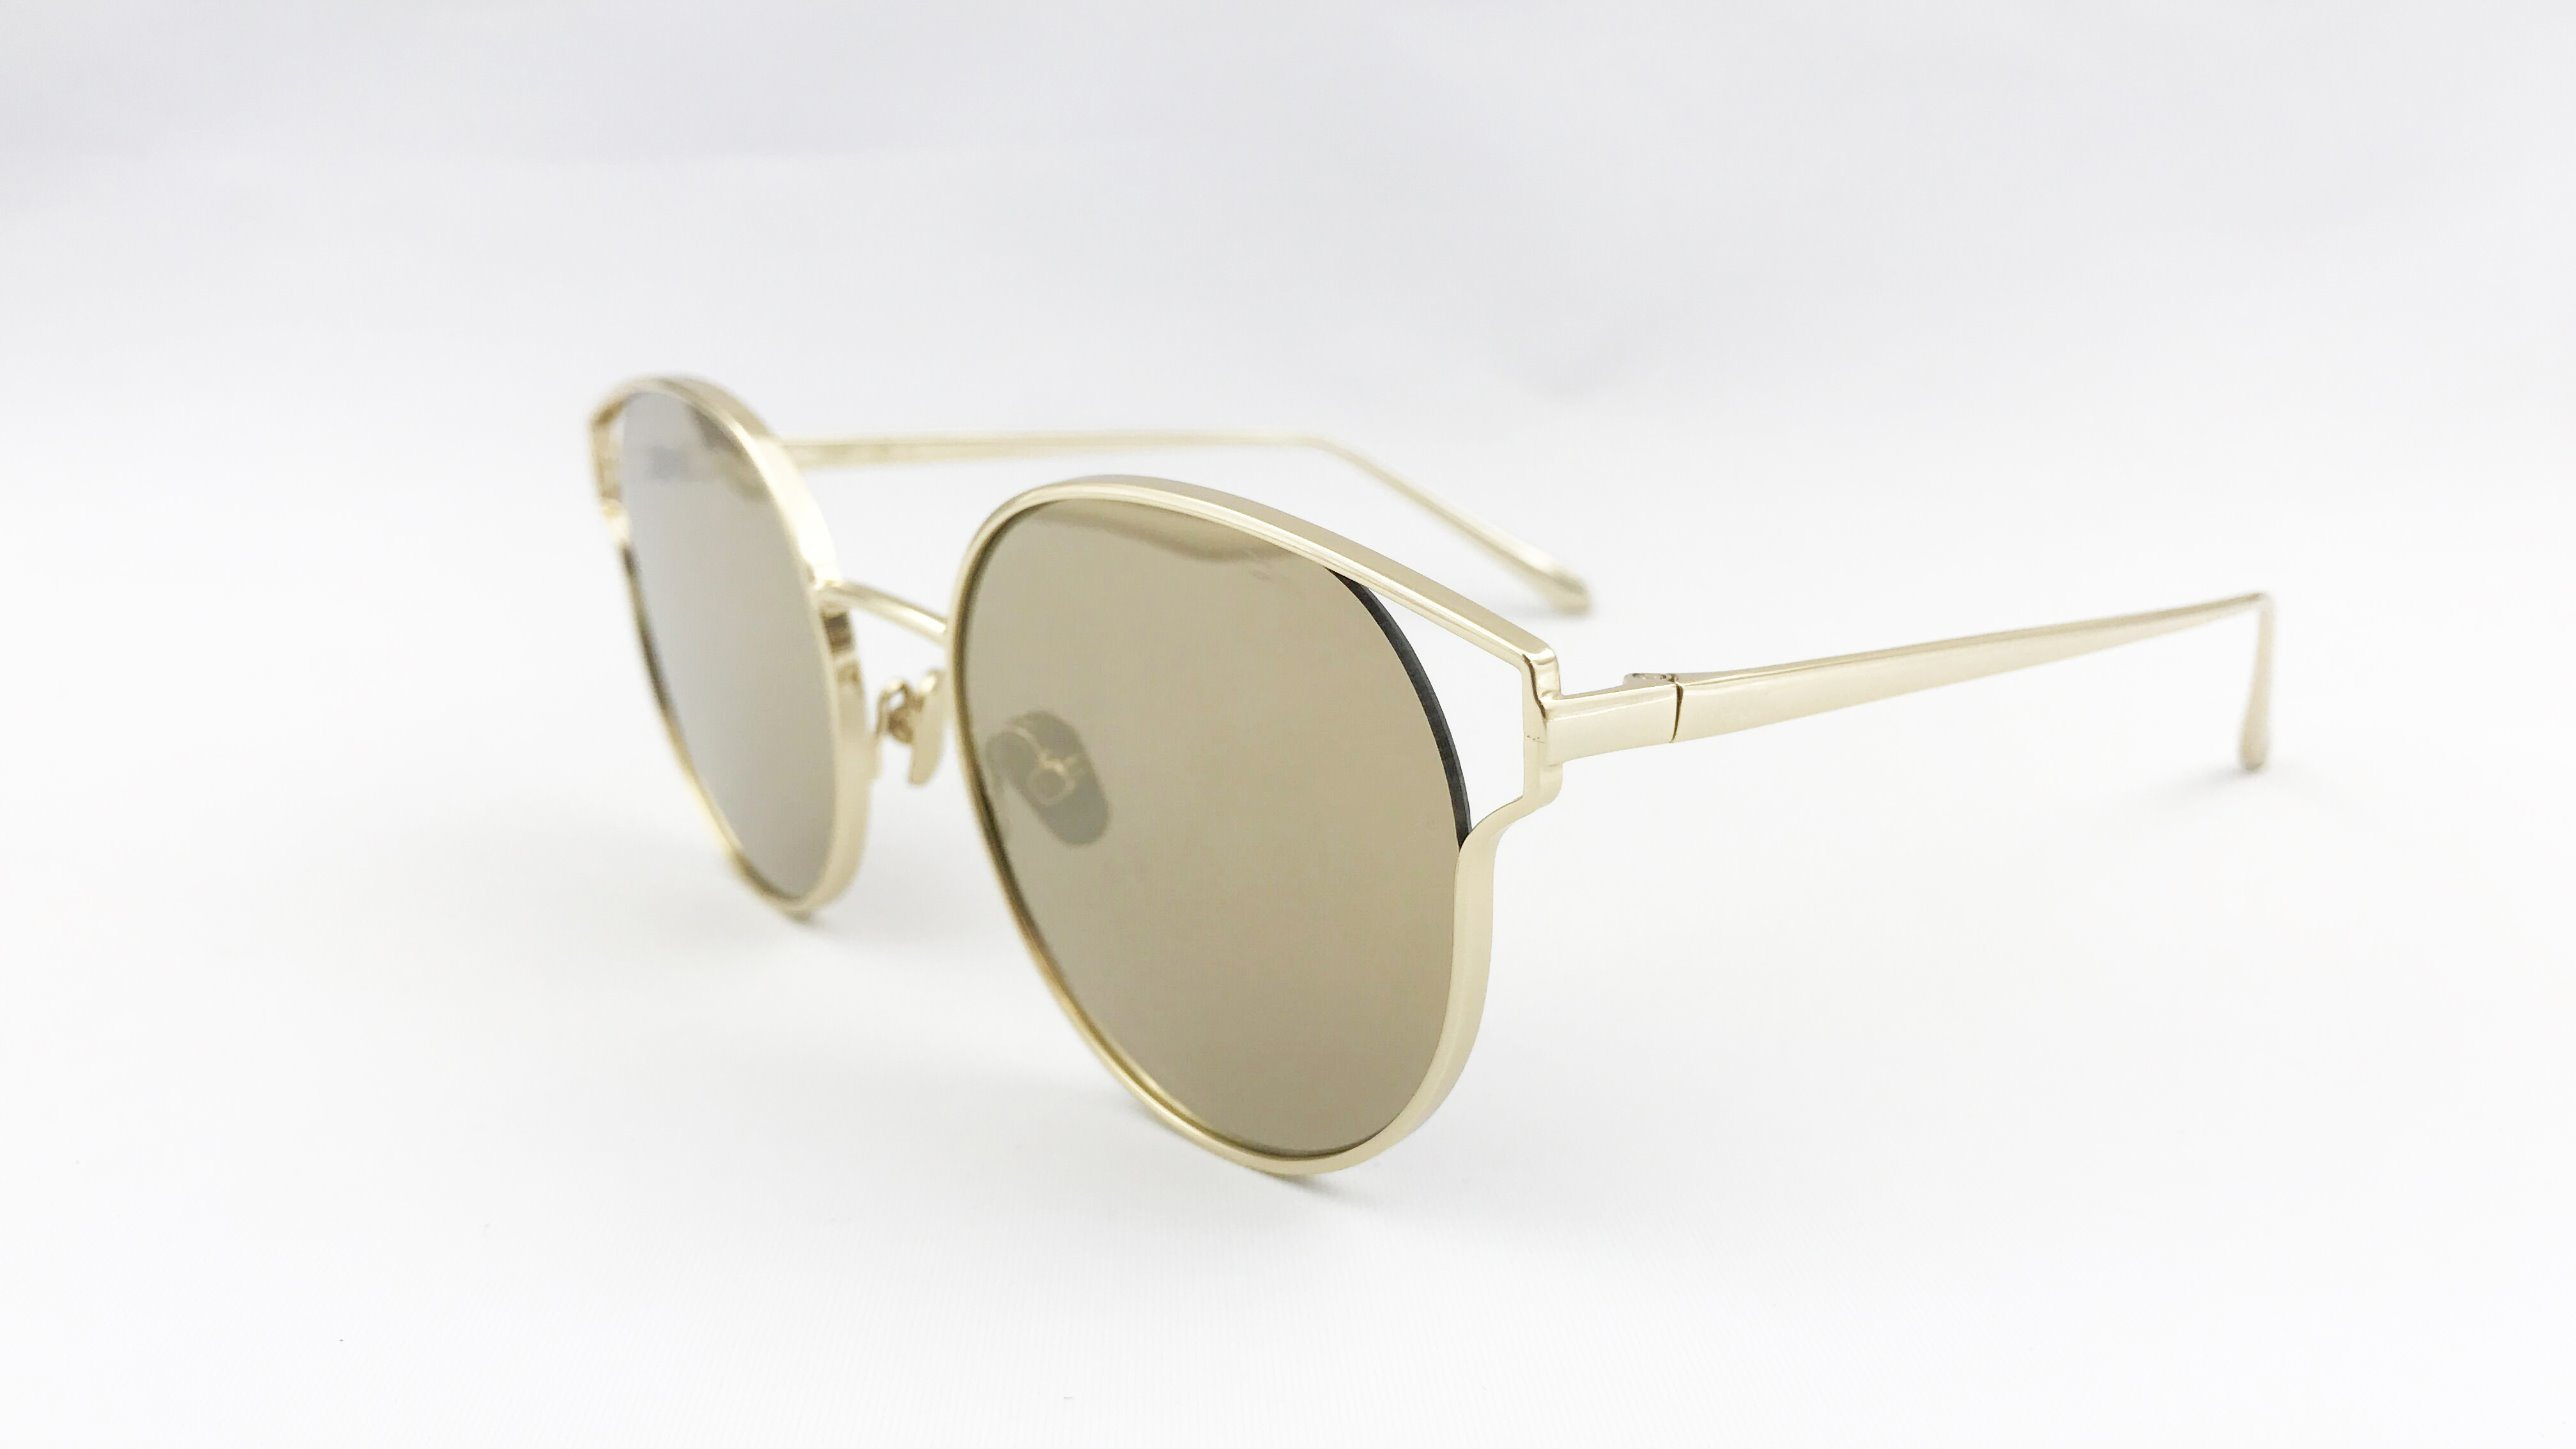 2017 Fashion Unisex Metal Sunglasses, Nylon Lens with Gold Mirror